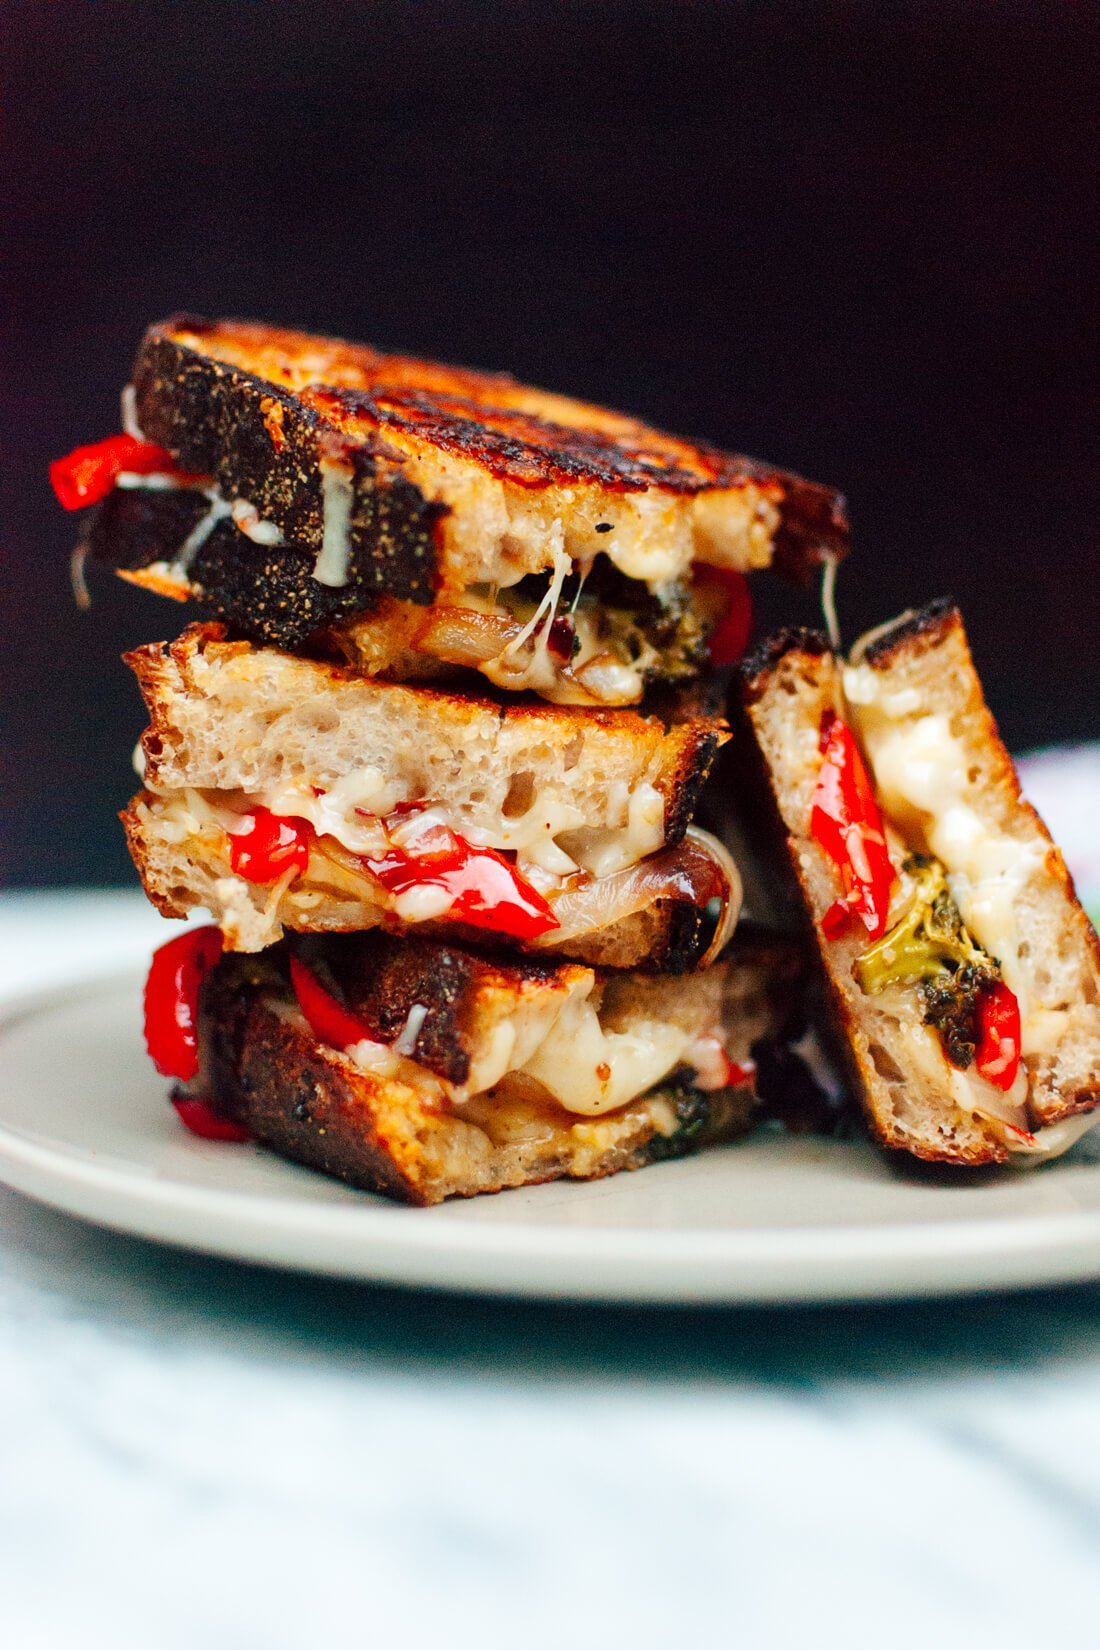 Balsamic roasted broccoli, red pepper and onion grilled cheese sandwiches